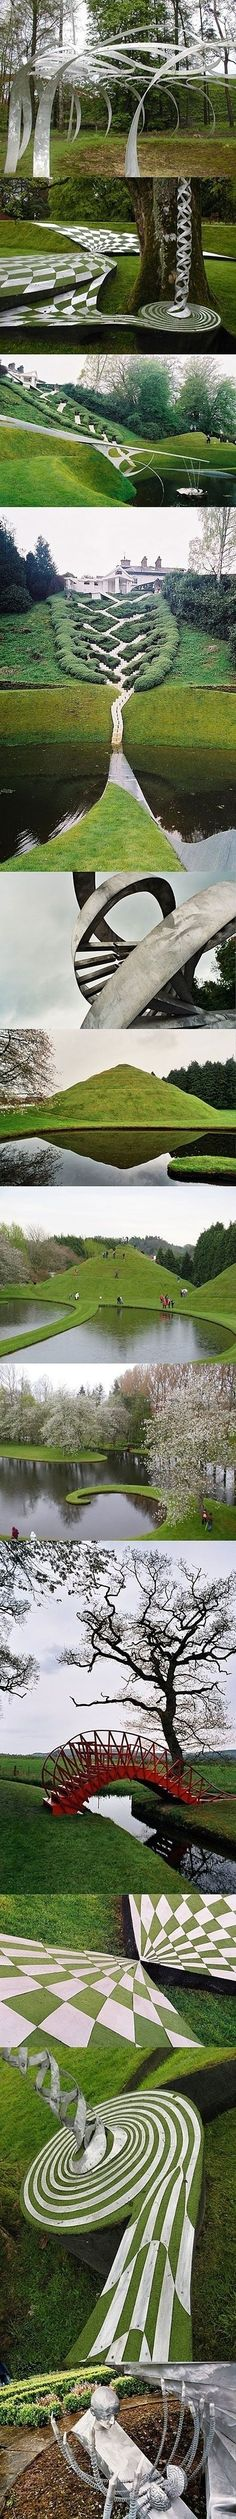 The garden of cosmic speculation in Scotland. Le jardin des Spéculations Cosmiques, Ecosse.